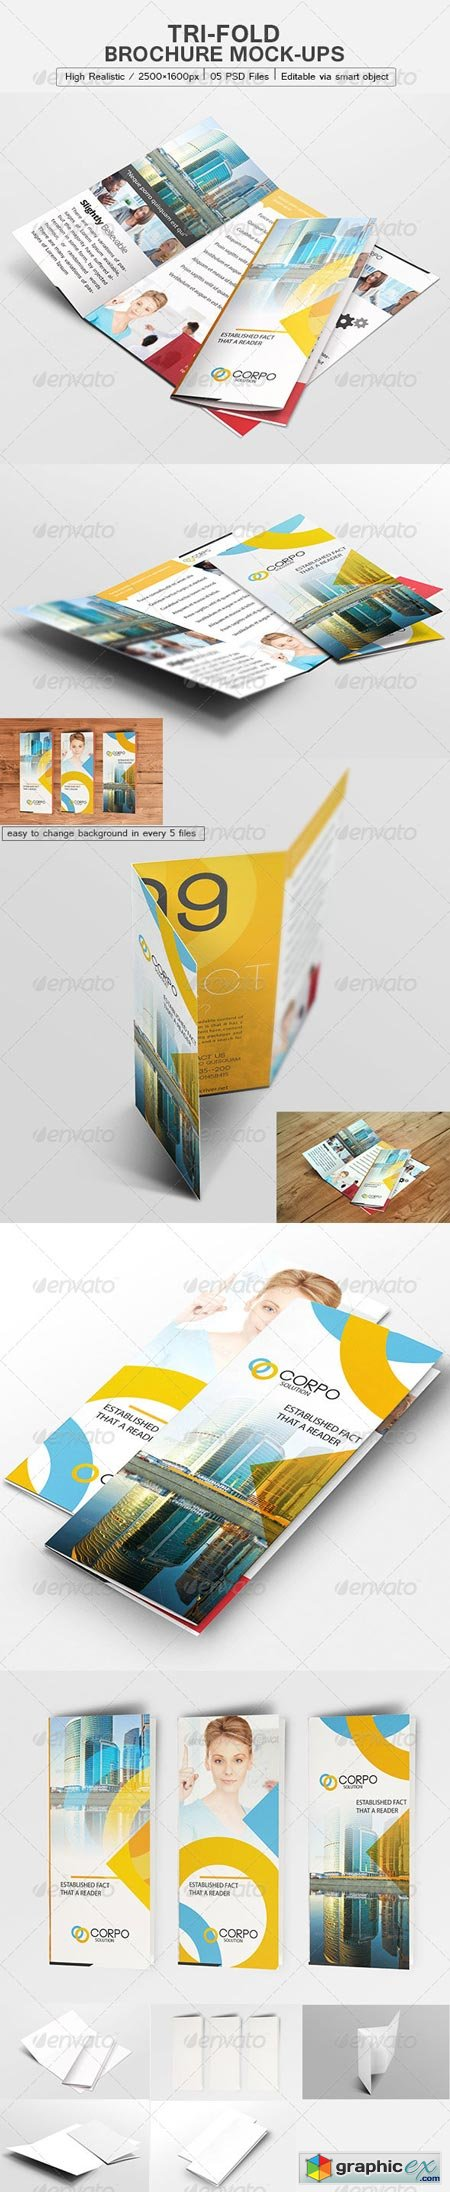 Tri-Fold Brochure Mock-Up 6223721